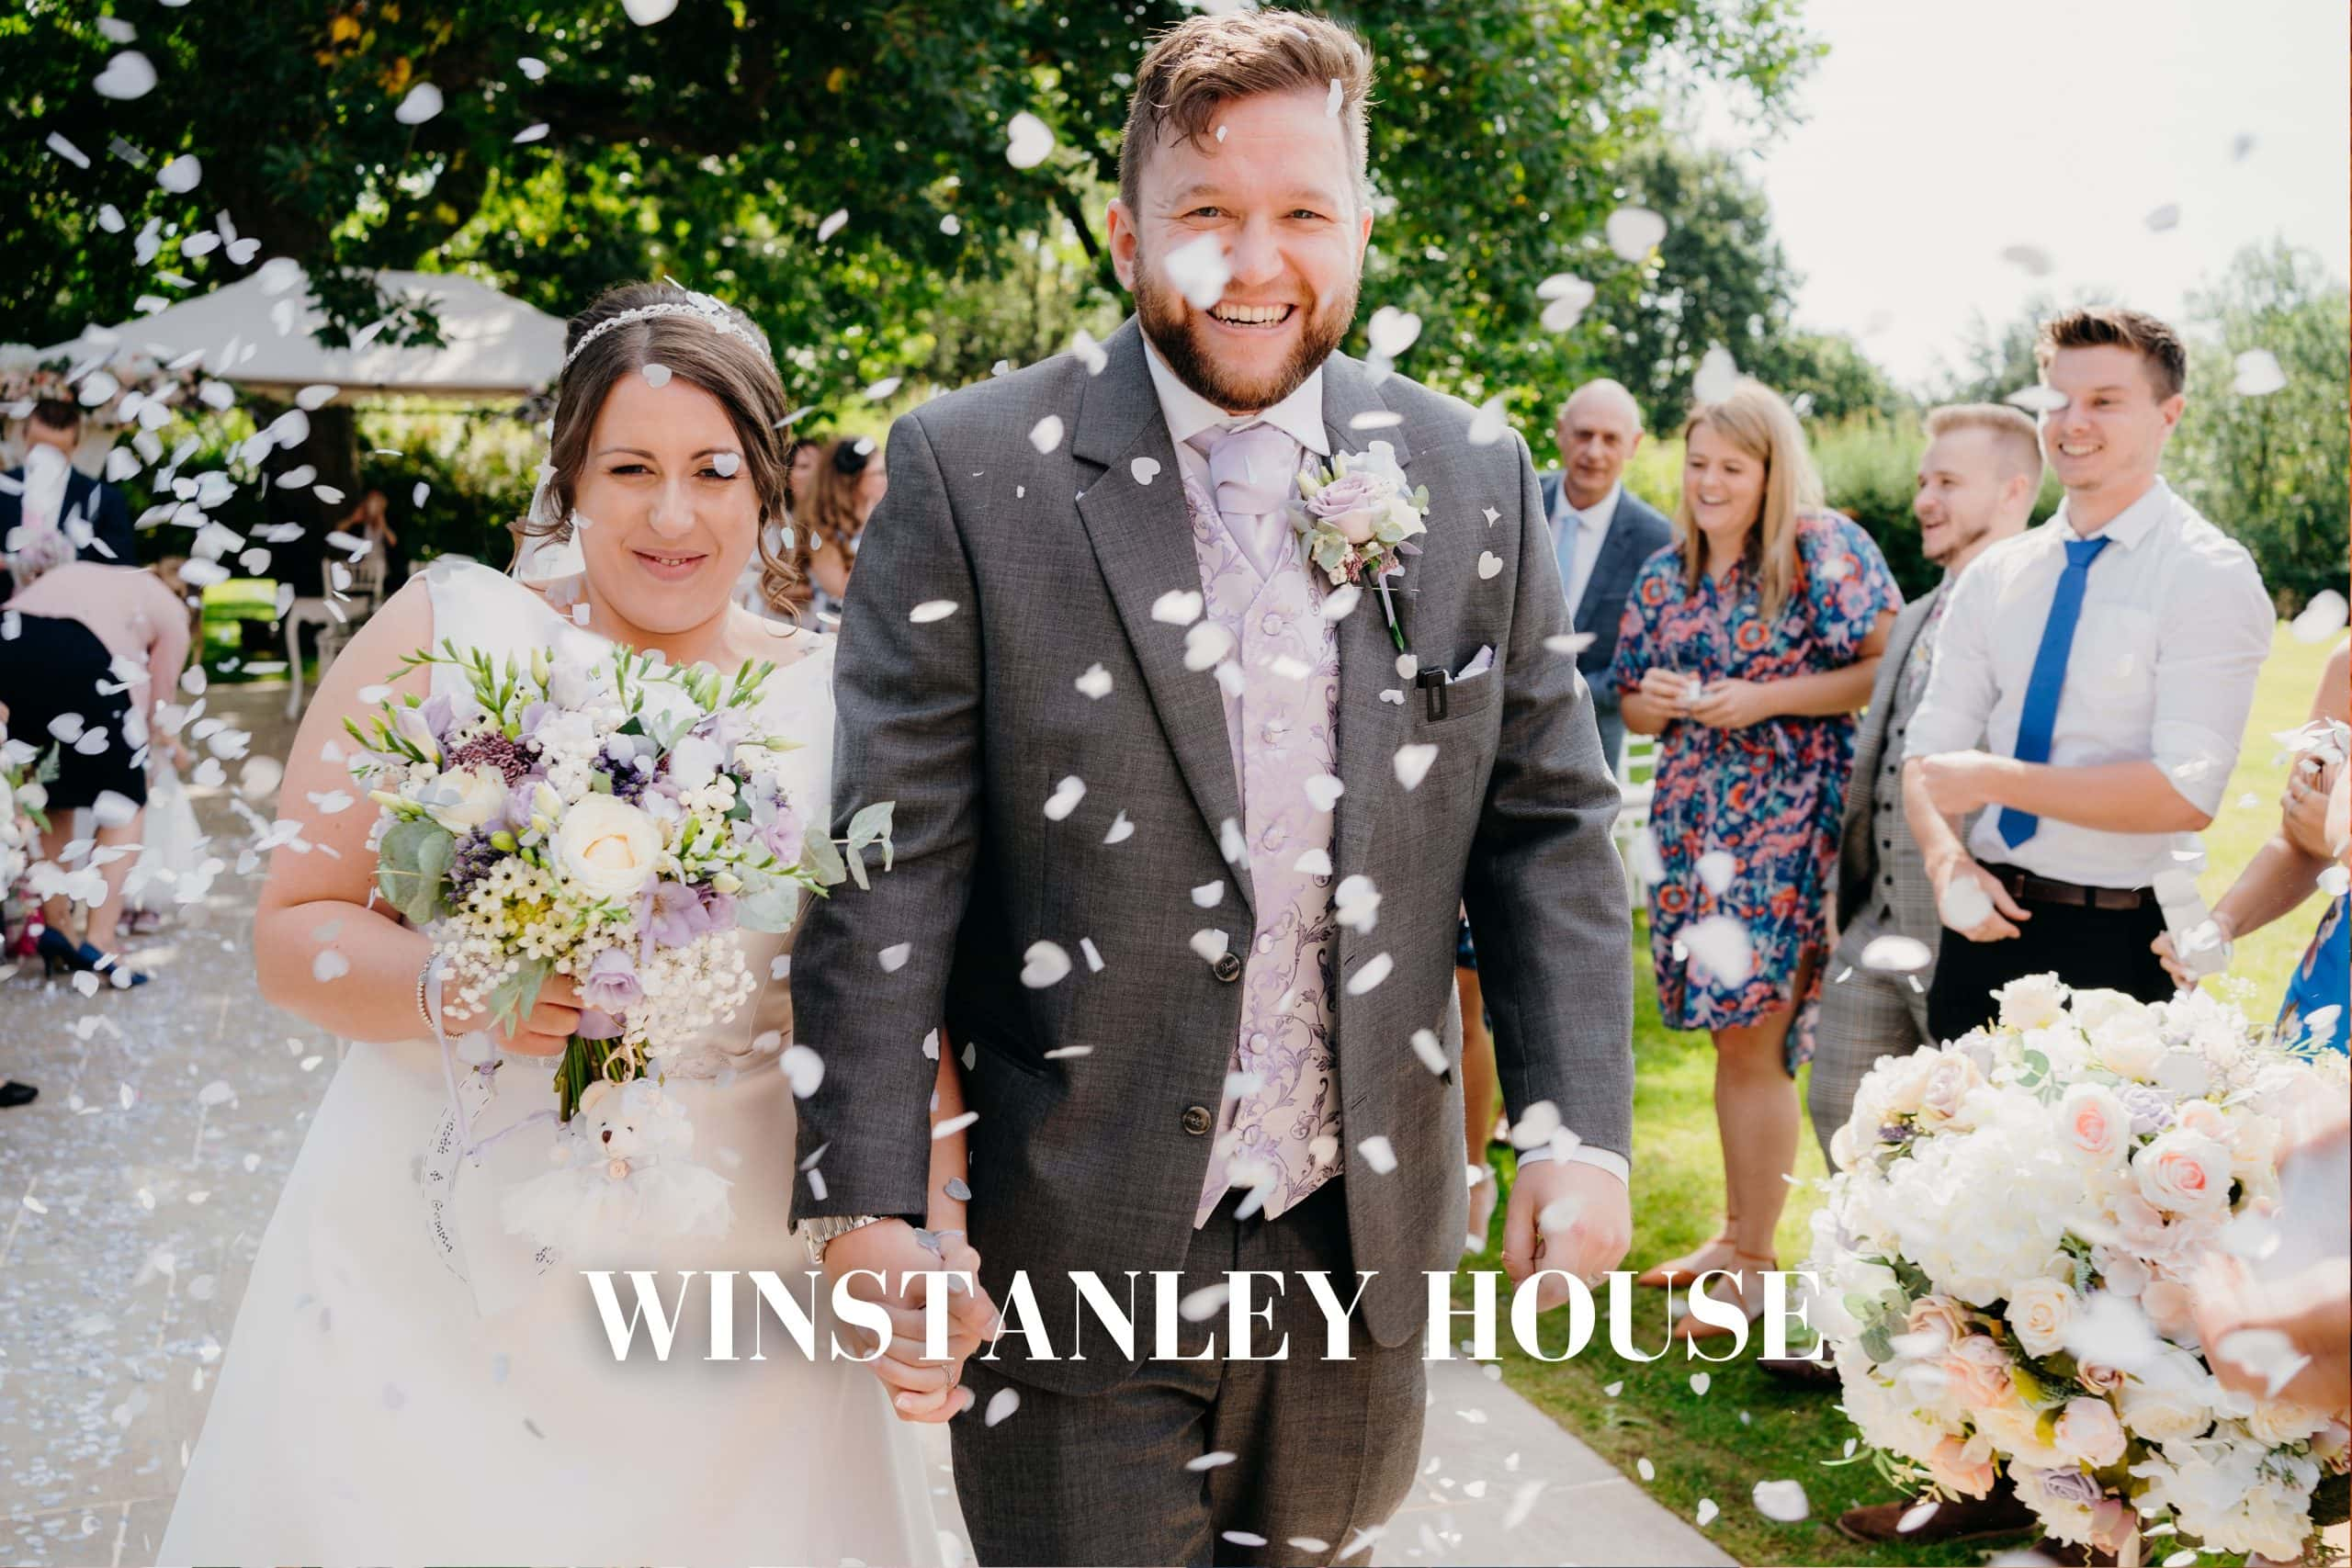 Winstanley House wedding - bride and groom get covered in confetti outside after their outdoor wedding